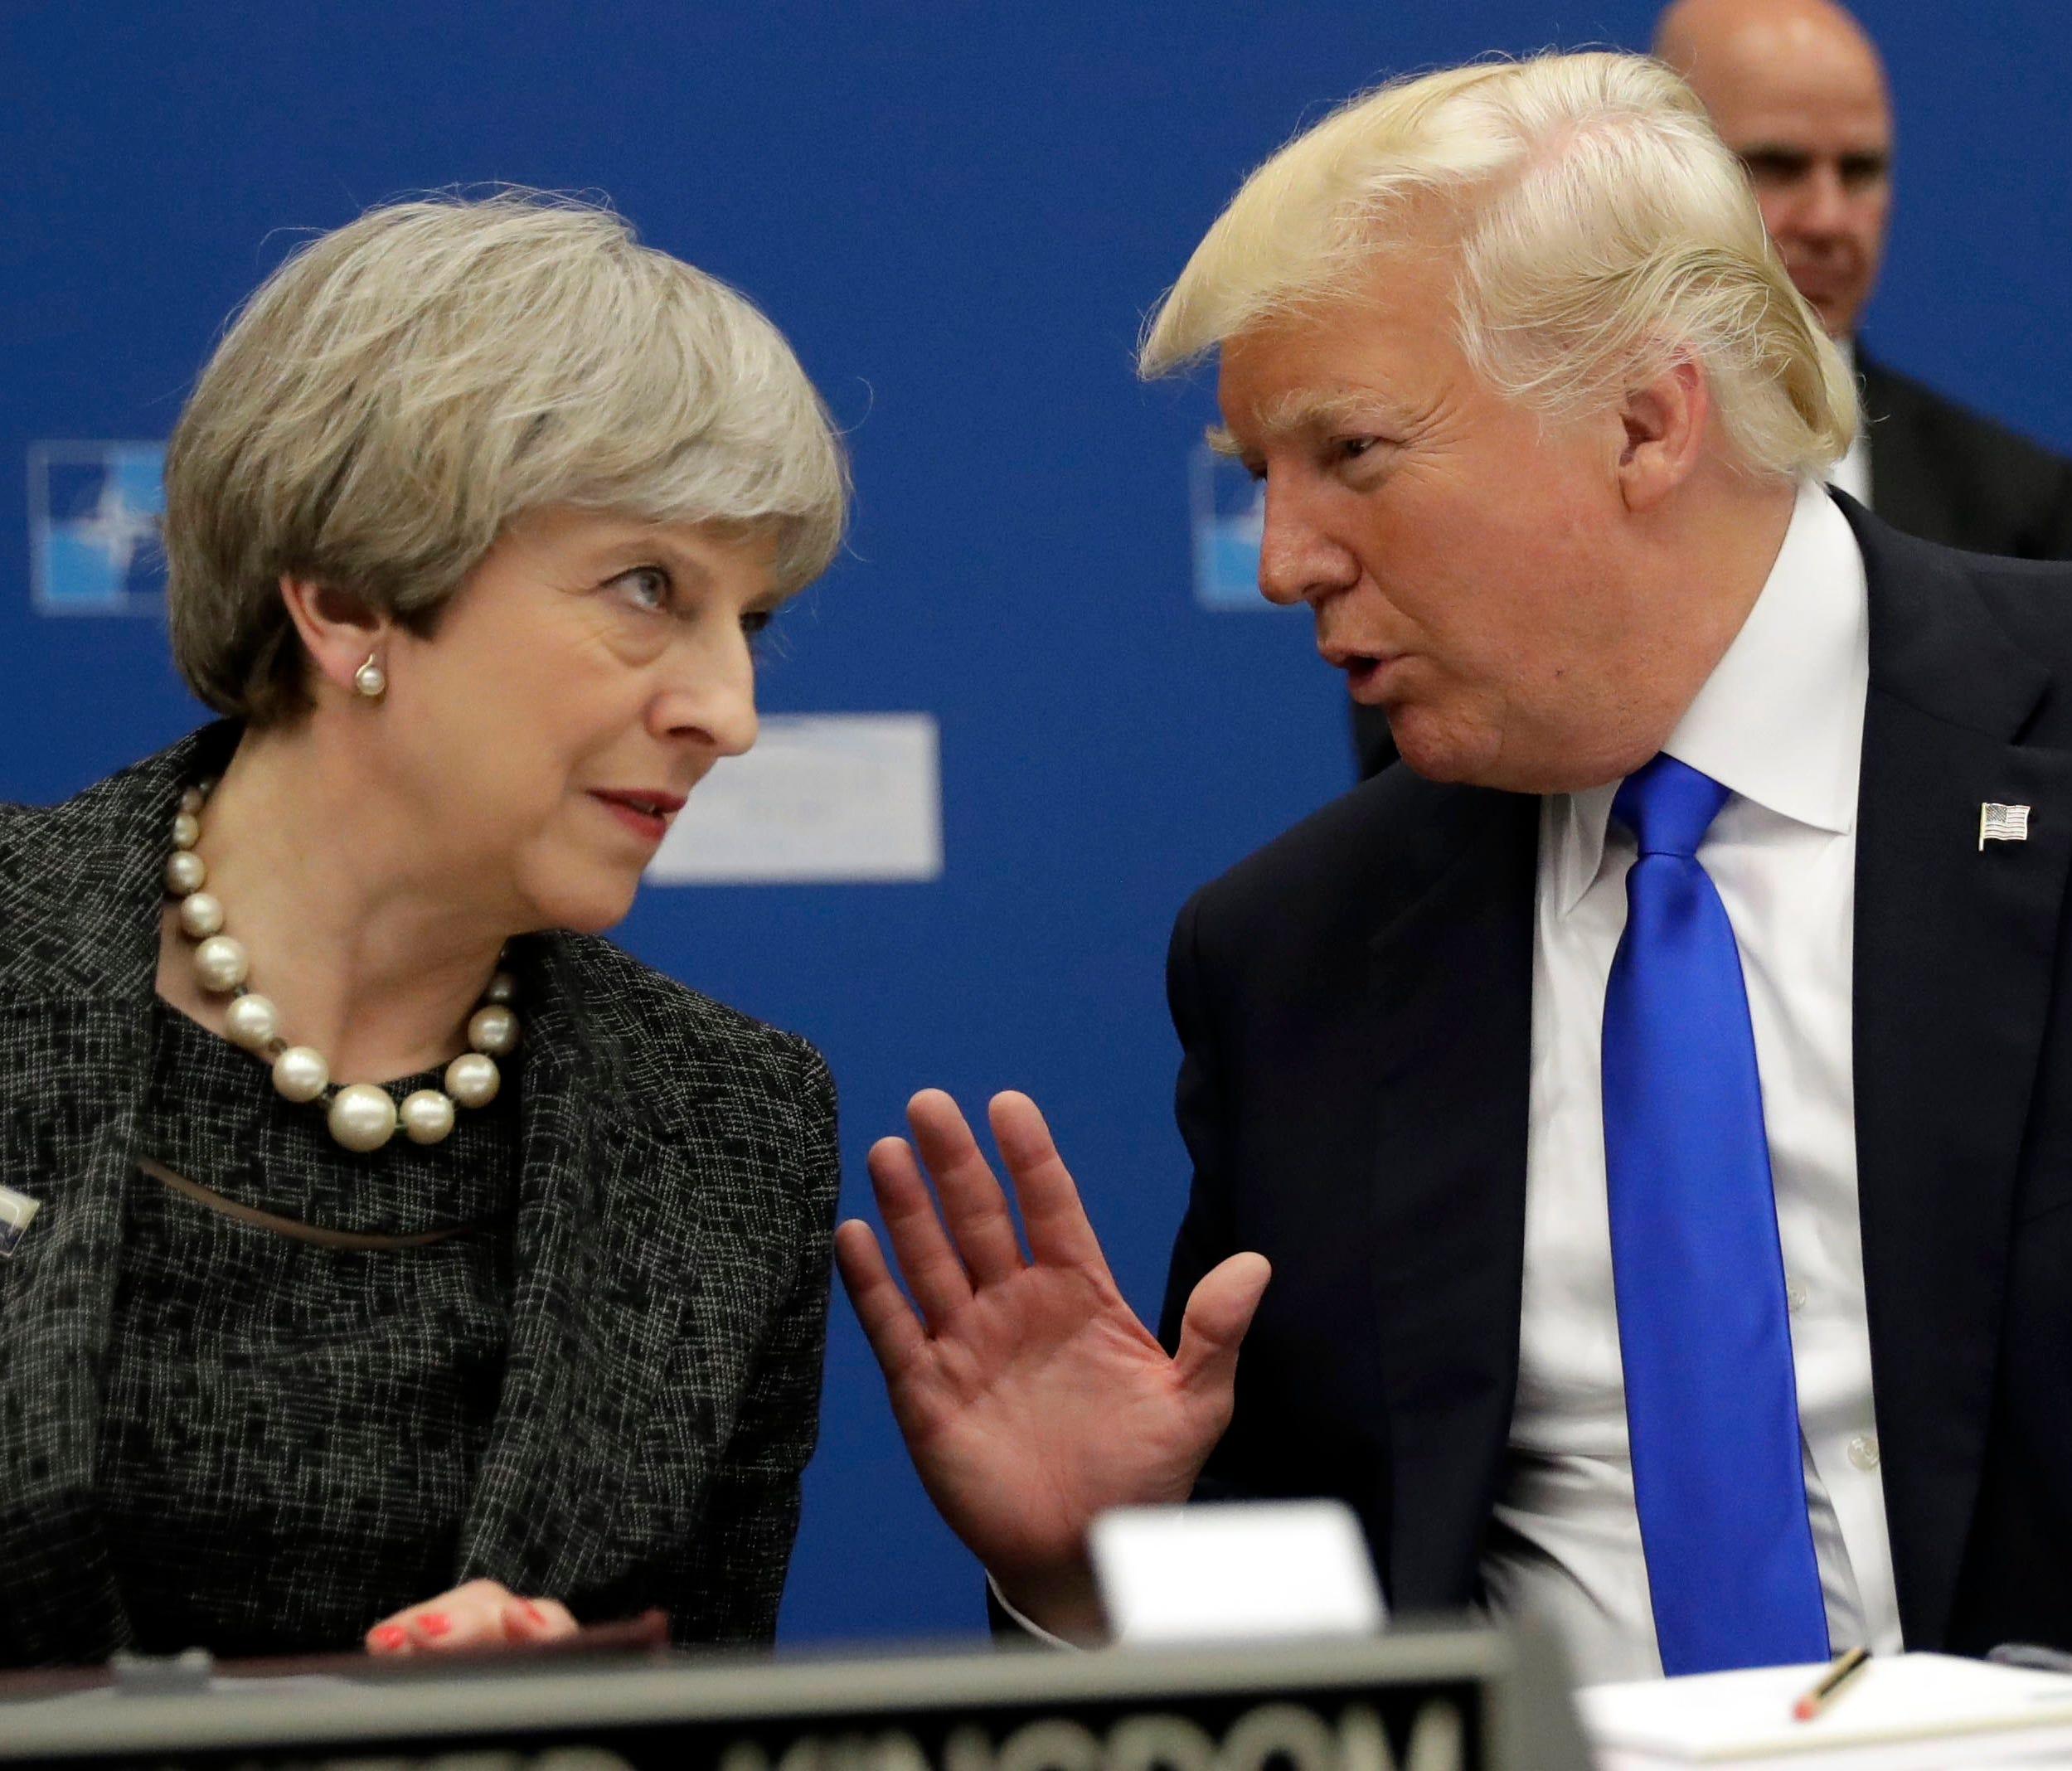 President Trump and British Prime Minister Theresa May speak during a working dinner meeting at the NATO summit in Brussels, Belgium, May 25, 2017.